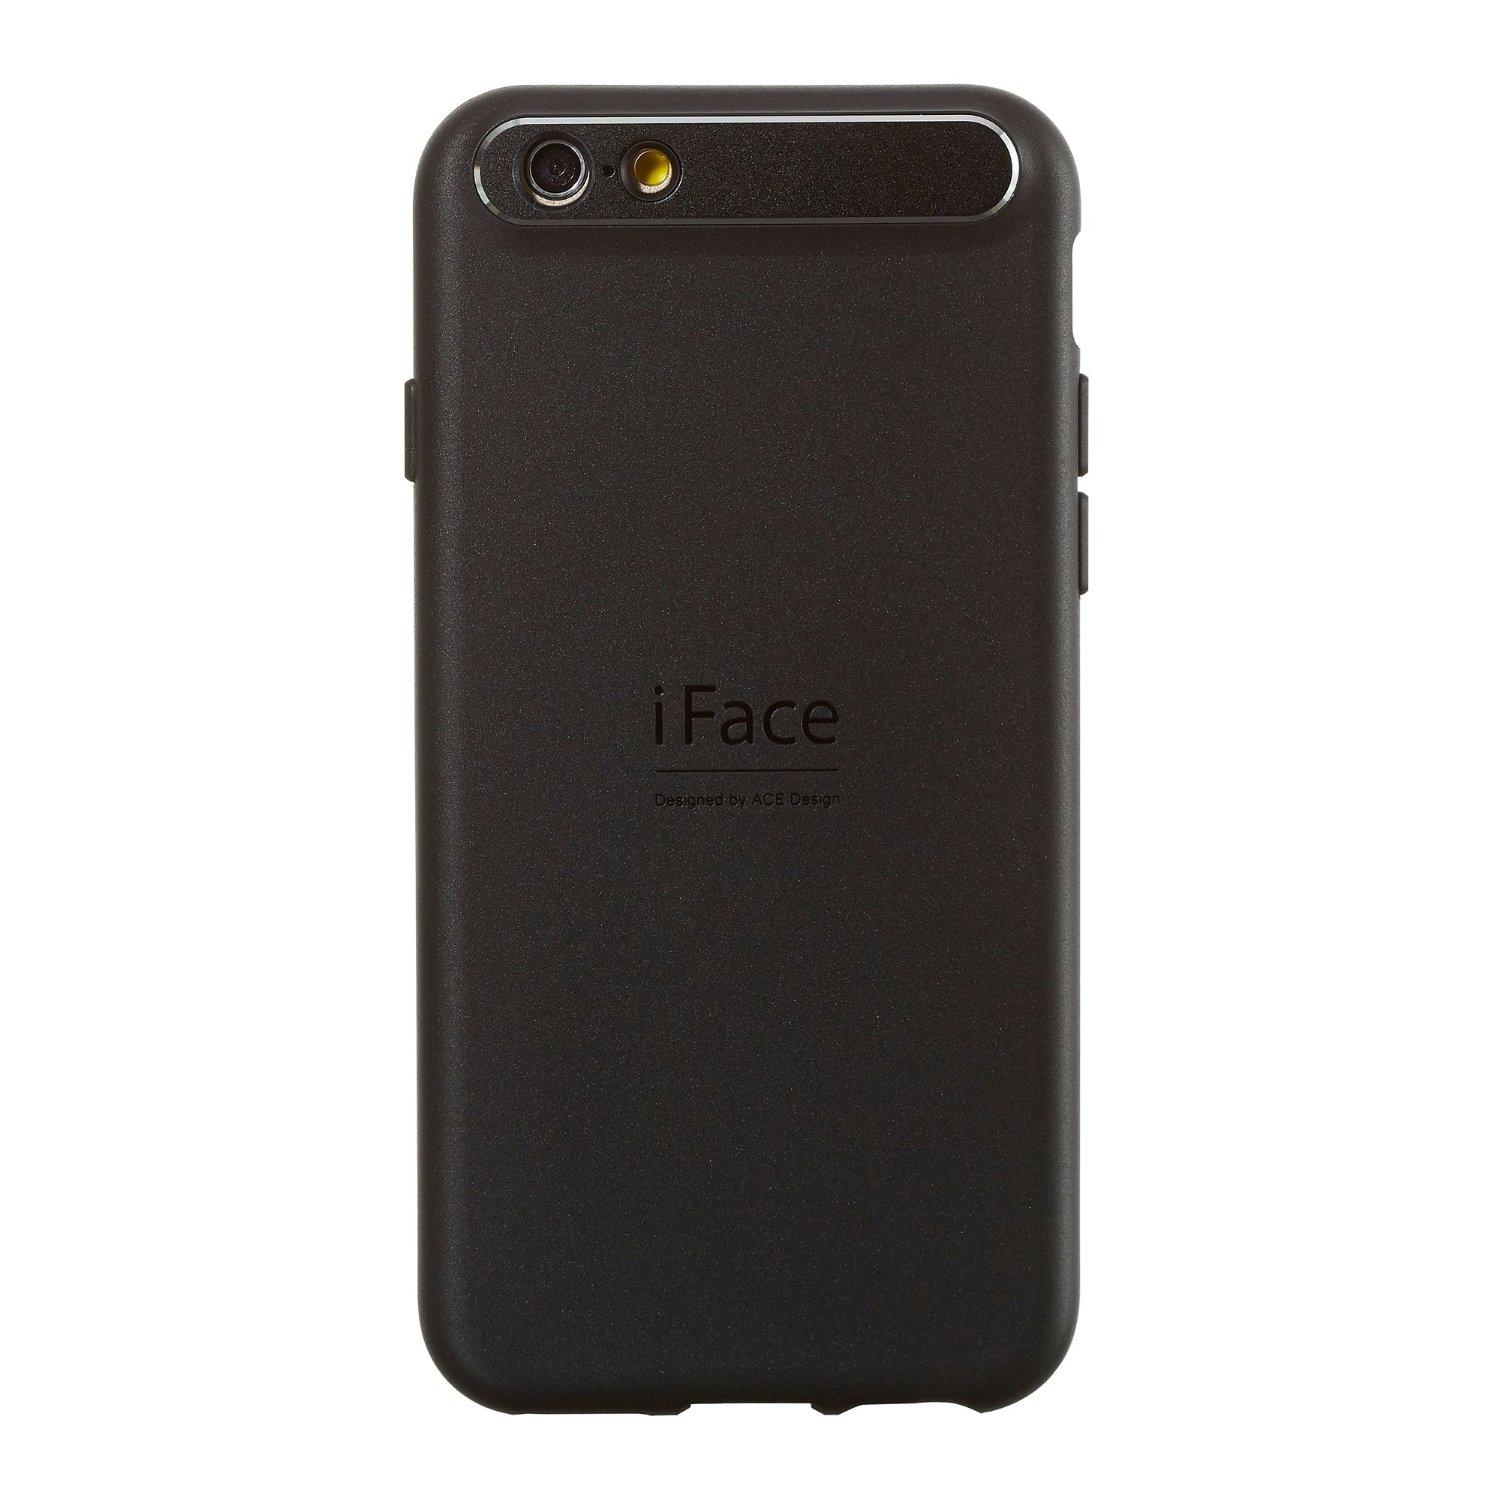 iFace New Generation Case for iPhone 6